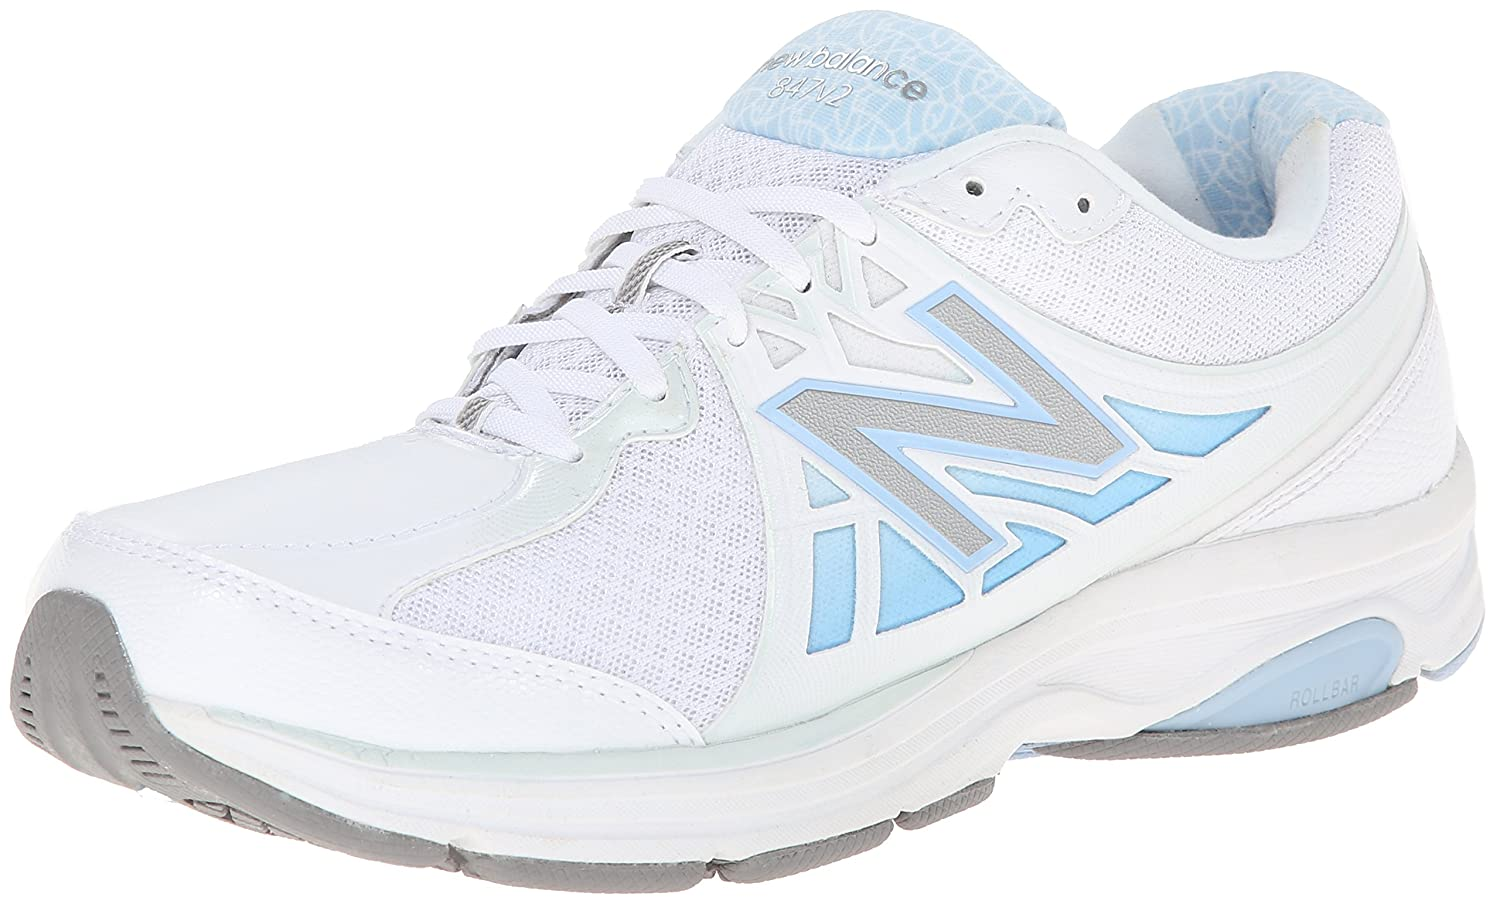 New Balance Women's WW847V2 Walking Shoe B00IY8WSE6 6 2A US|White